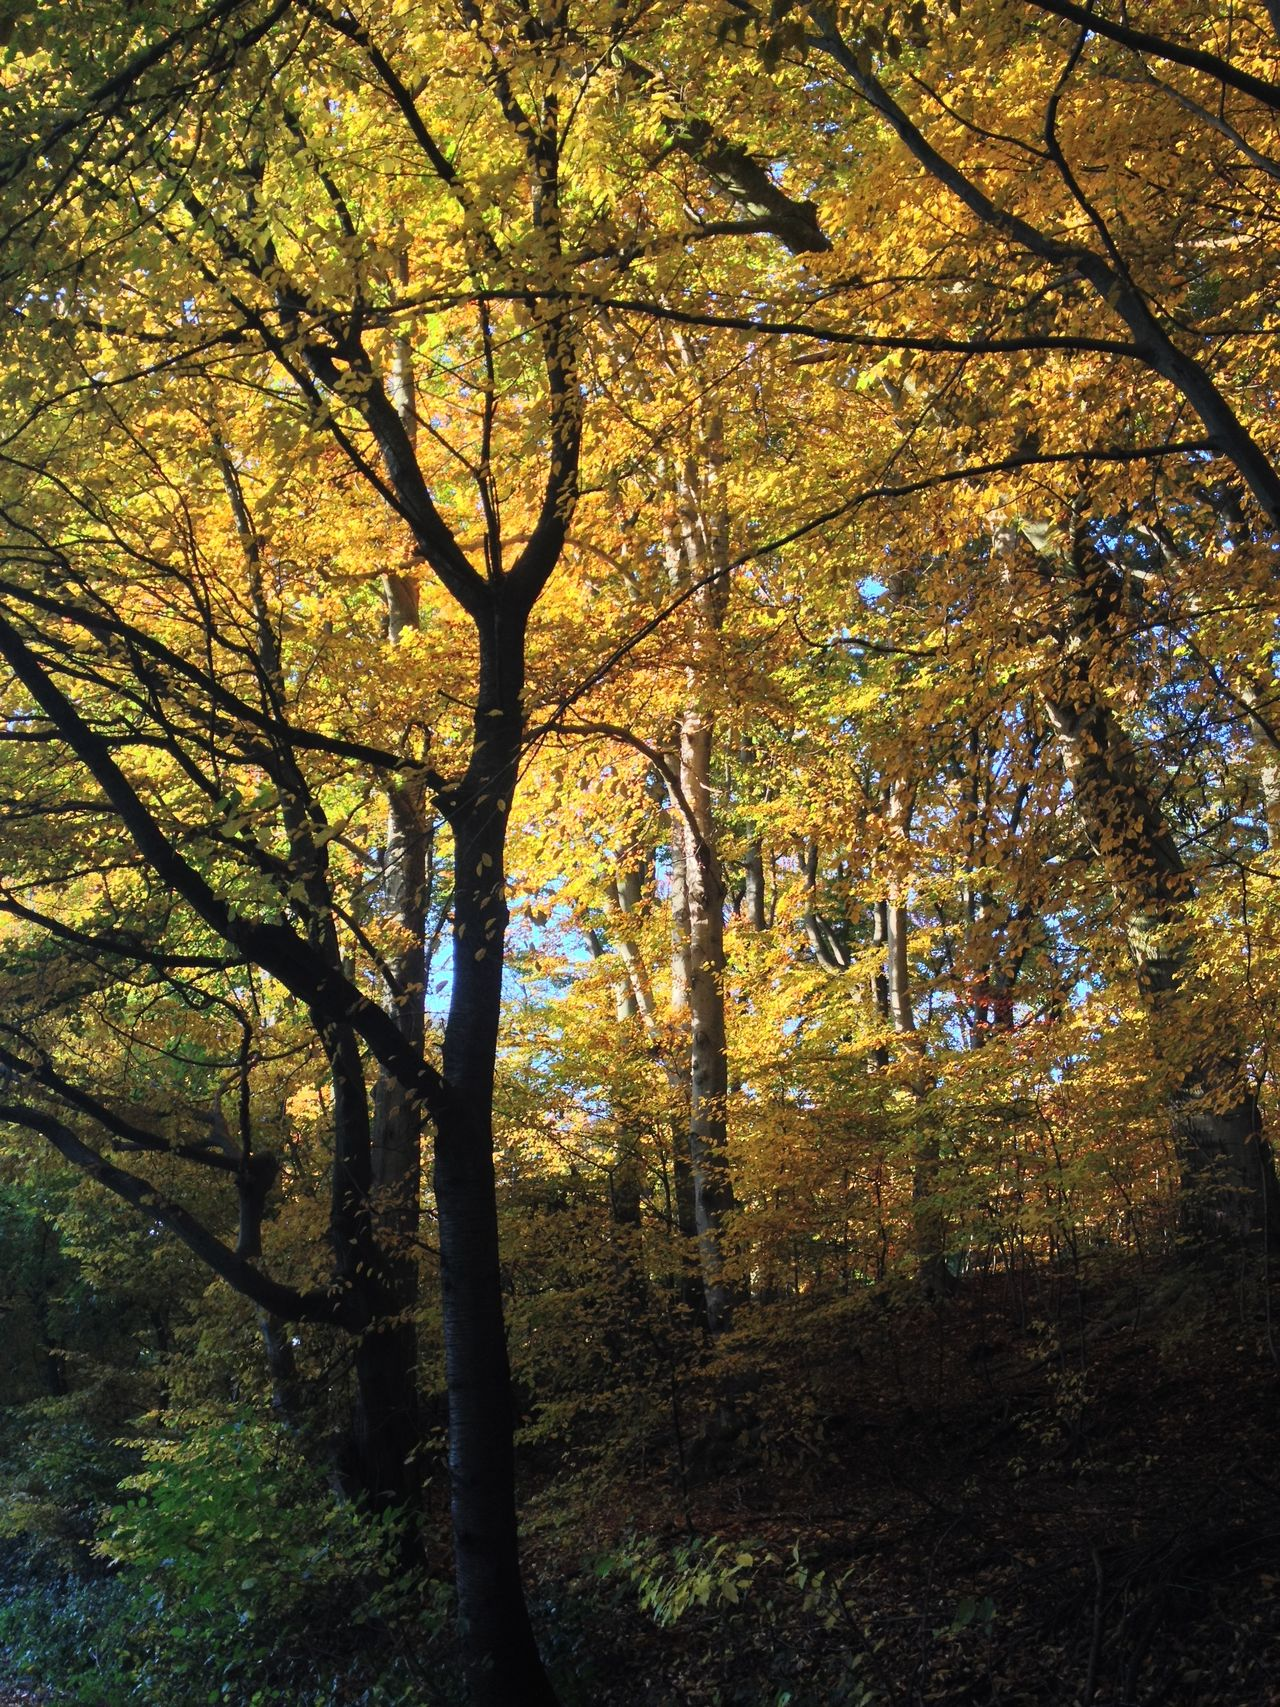 Autumn Beauty In Nature Branch Forest Forest Photography Golden Autumn Green Green Color Growth Nature Season  Solitude Tree Tree Lover Tree Trunk WoodLand